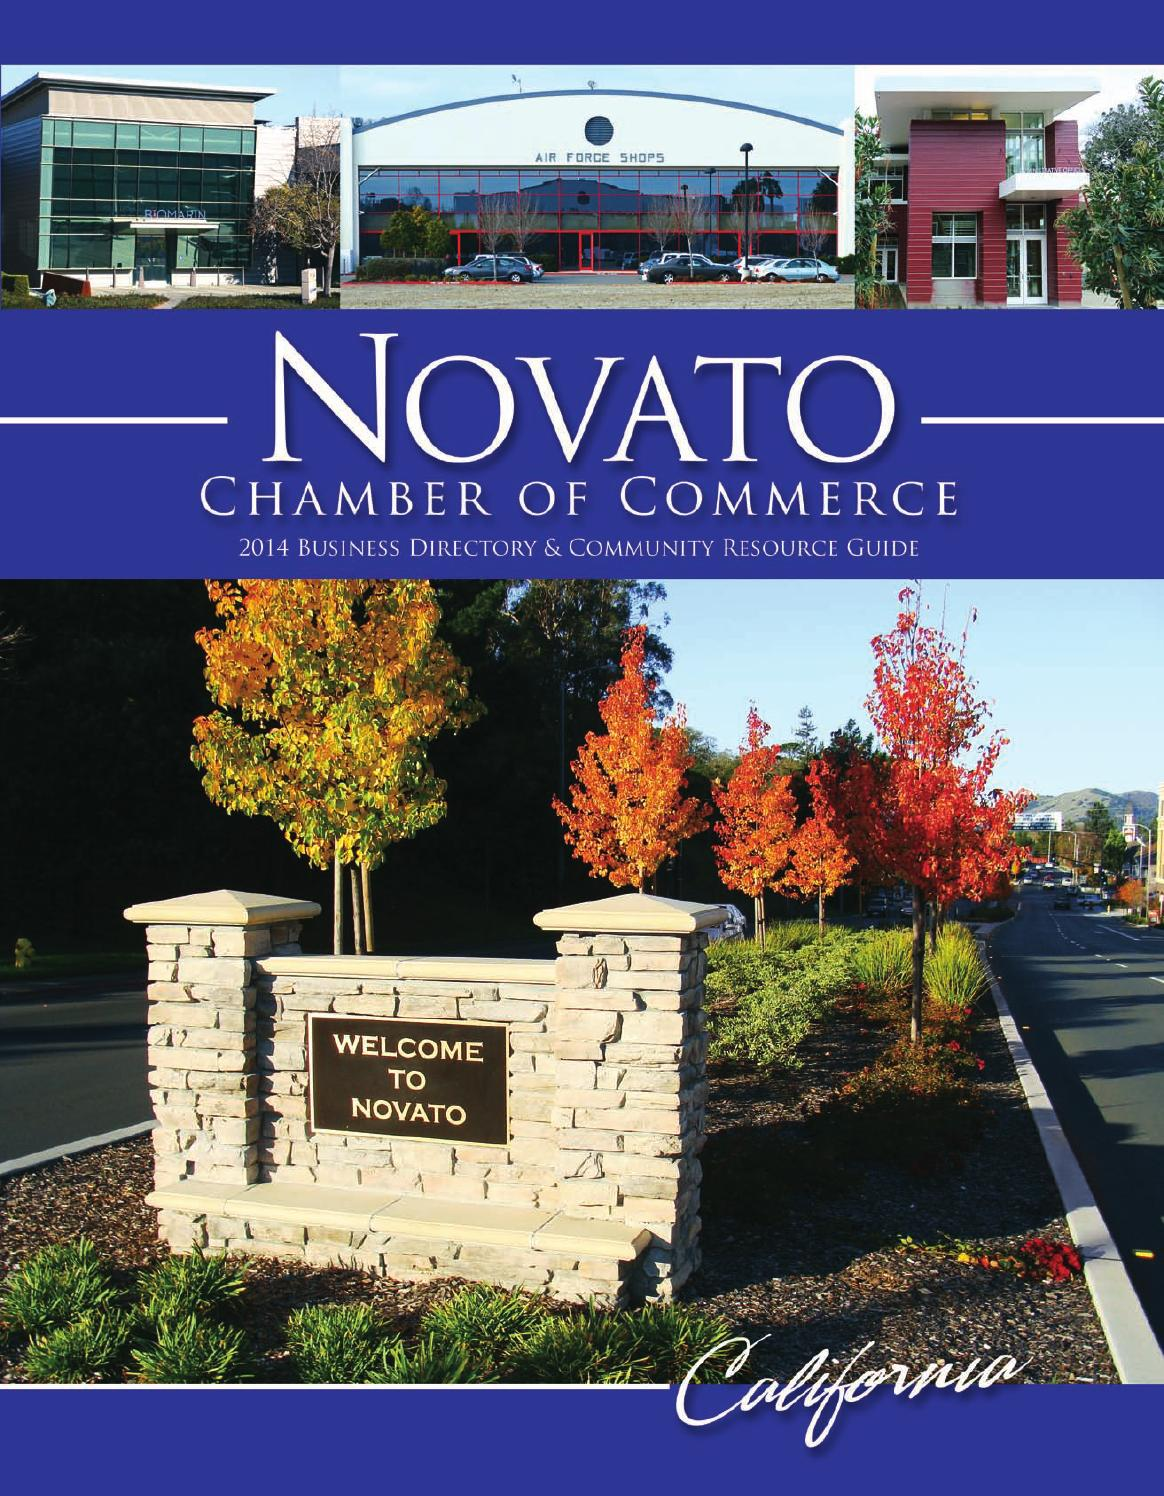 Chianti Cucina Novato Ca 94945 Novato Ca Community Profile By Townsquare Publications Llc Issuu